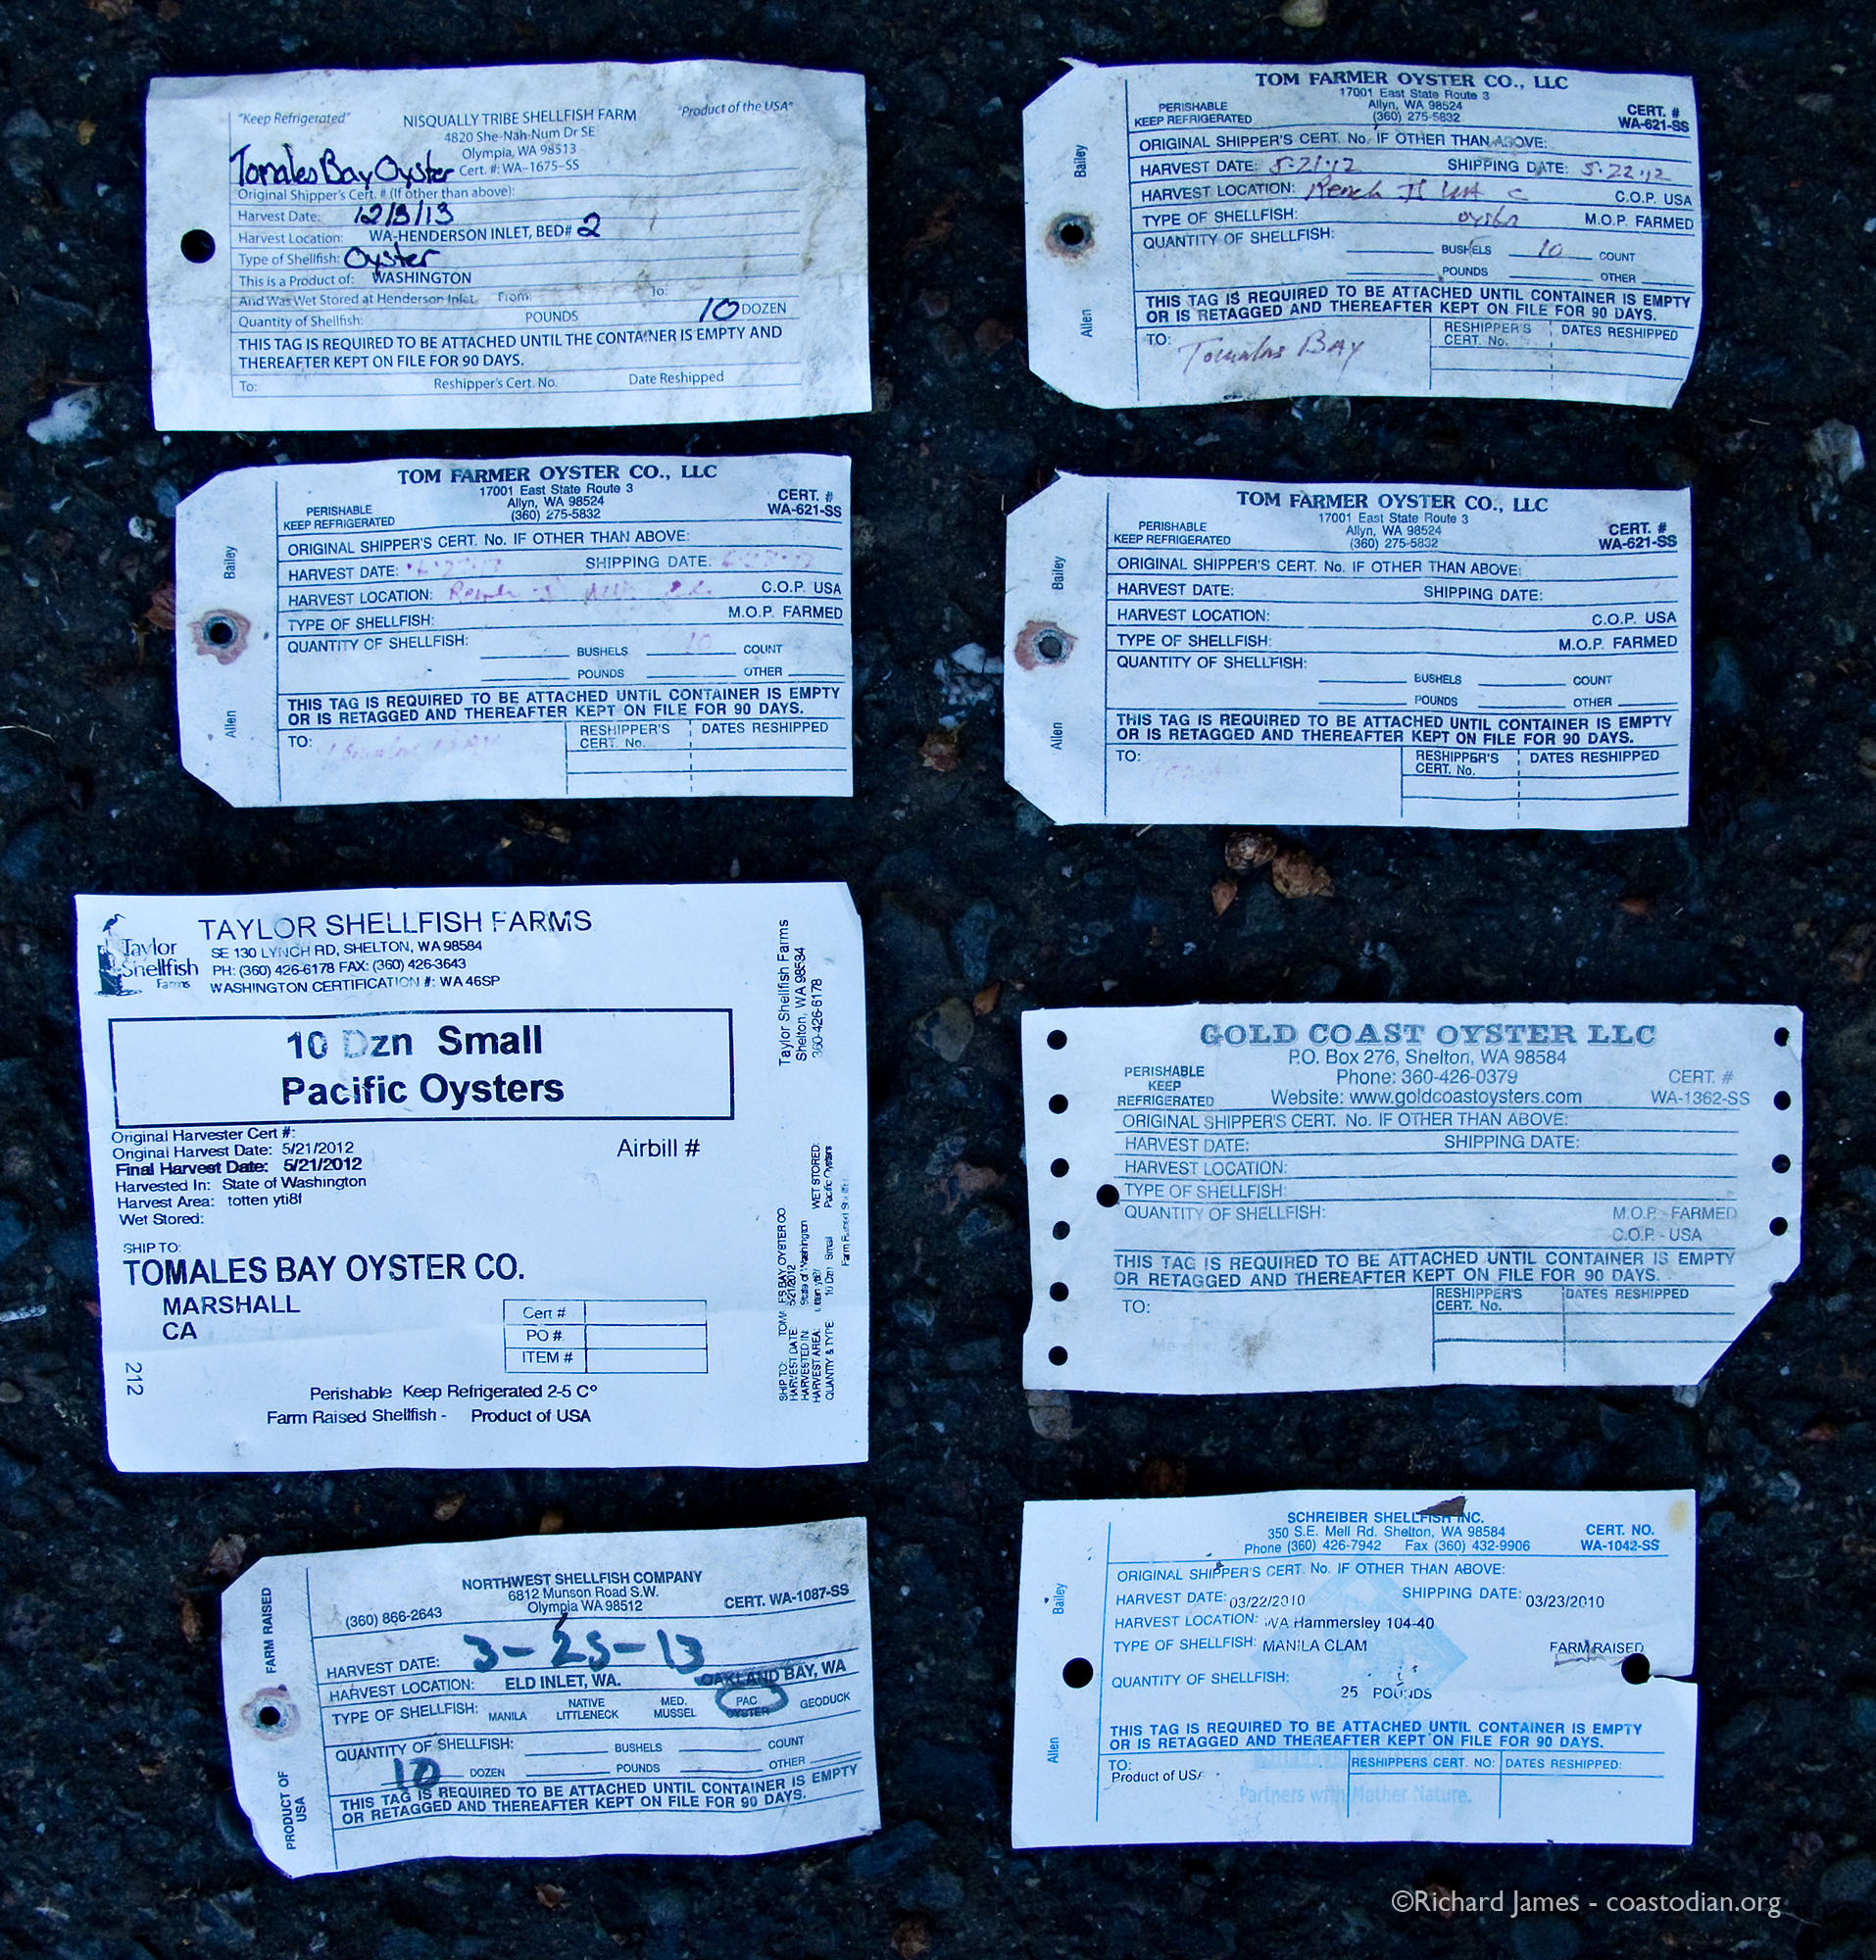 More tags from those Washington oysters - Nisqually Tribe Shellfish Farm, Tom Farmer Oyster Company, Taylor Shellfish Farms, Gold Coast Oyster LLC, Northwest Shellfish Company, Schreiber Shellfish Inc.